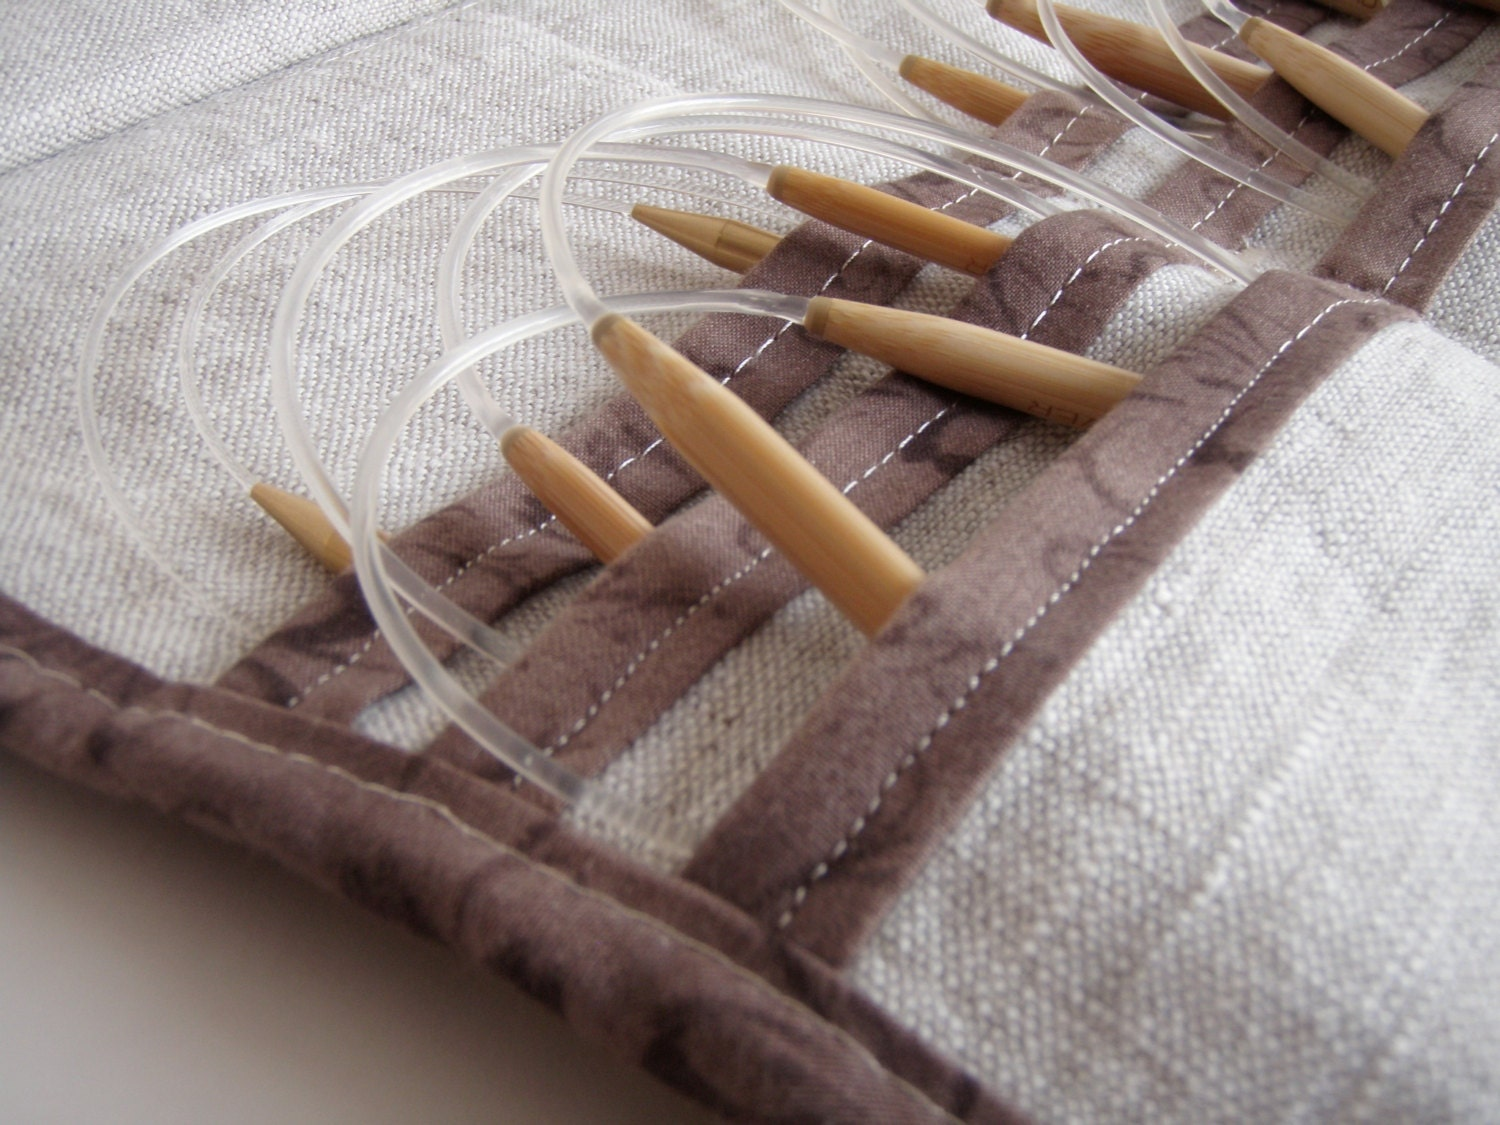 Circular Knitting Needle Case : Circular knitting needle case linen with classic brown